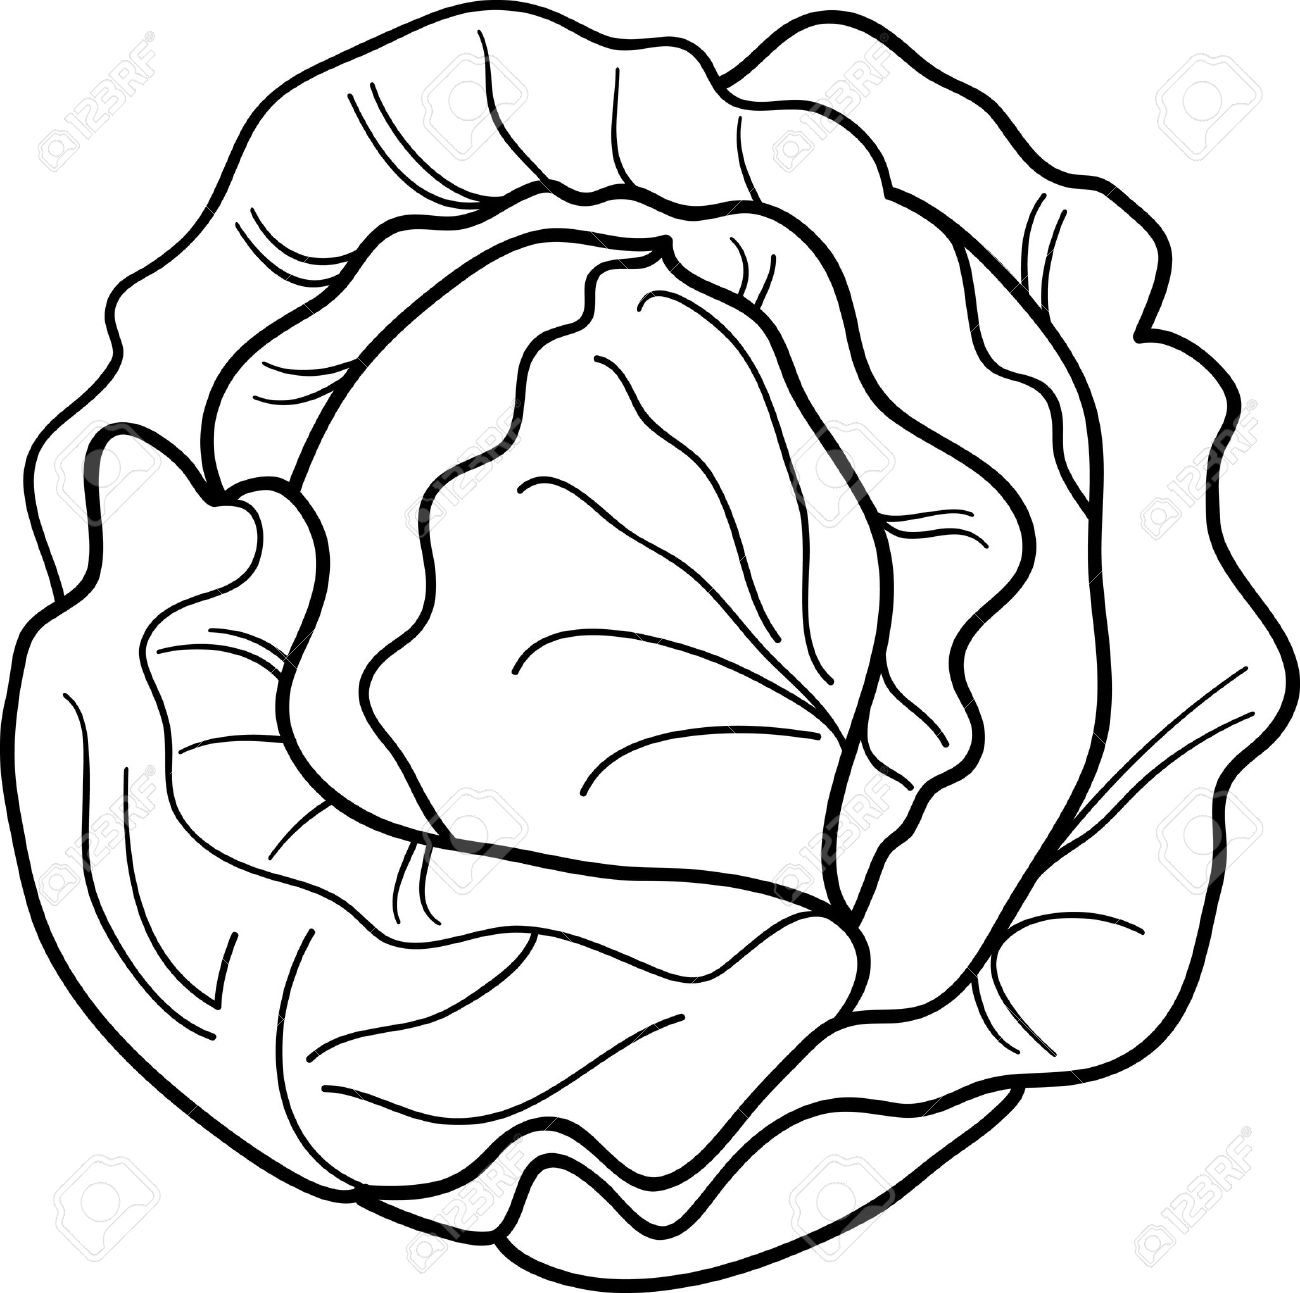 1300x1293 Cabbage Clipart Black And White